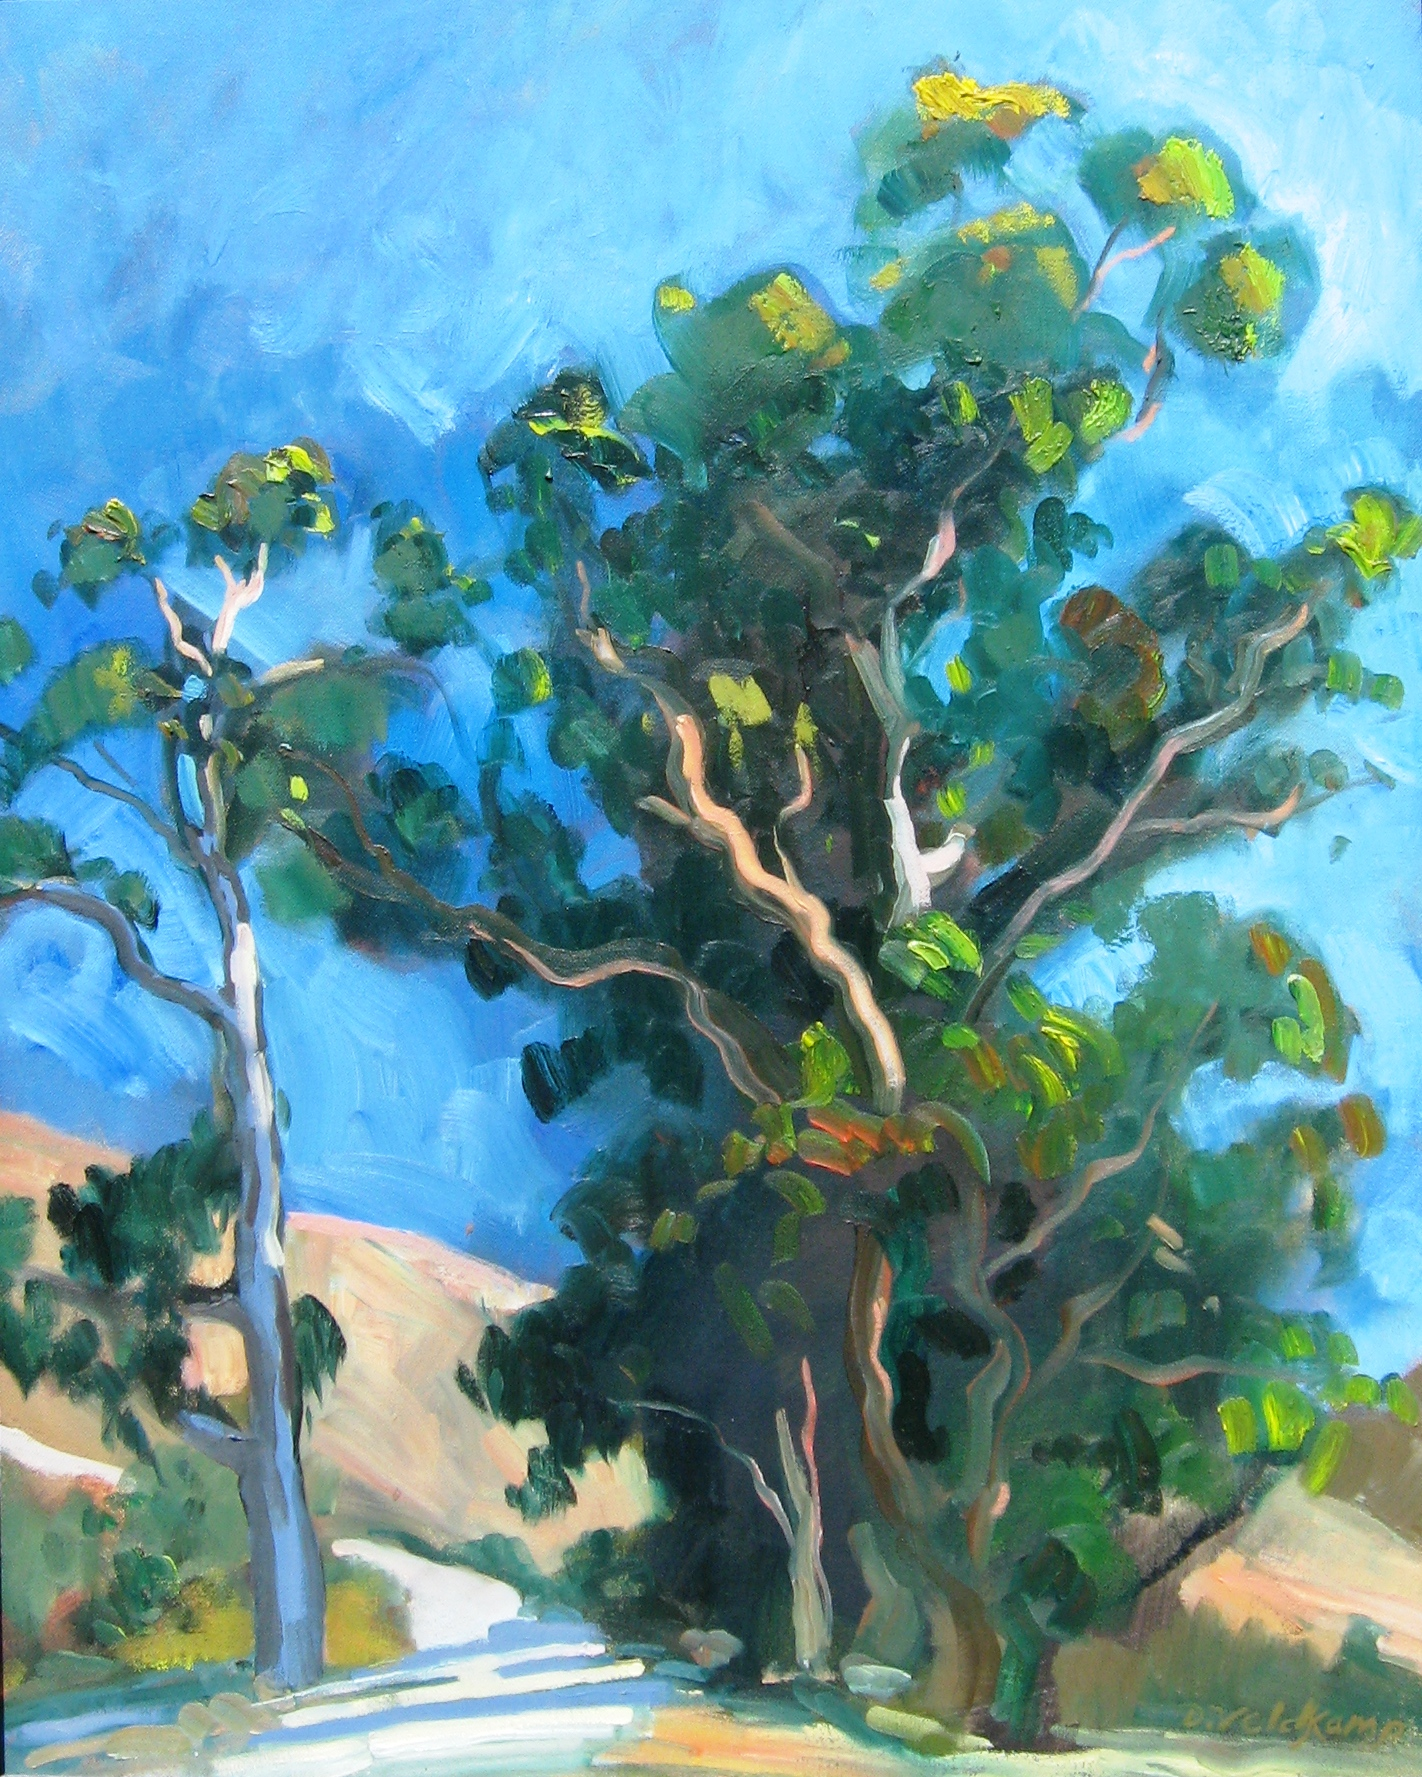 Santa Rosa Creek Eucalyptus, oil on canvas, 30 x 24 inches - UNAVAILABLE